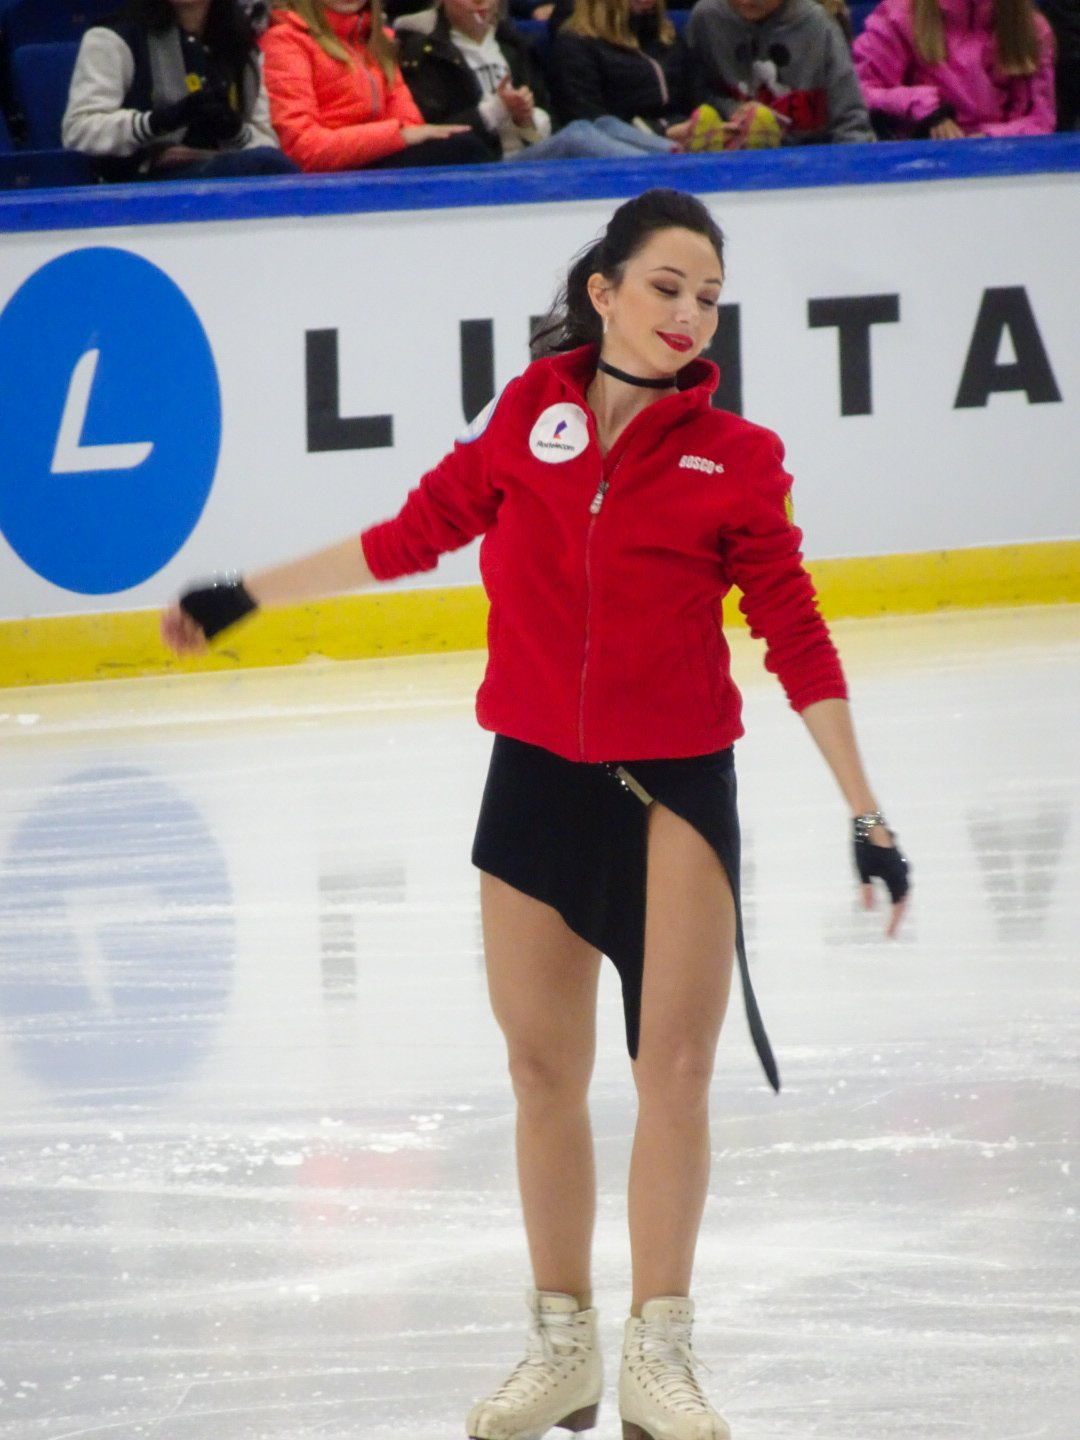 Challenger (6) - Finlandia Trophy. Oct 11 - 13, 2019. Espoo /FIN      - Страница 6 EGoPchyXkAAhjY-?format=jpg&name=large